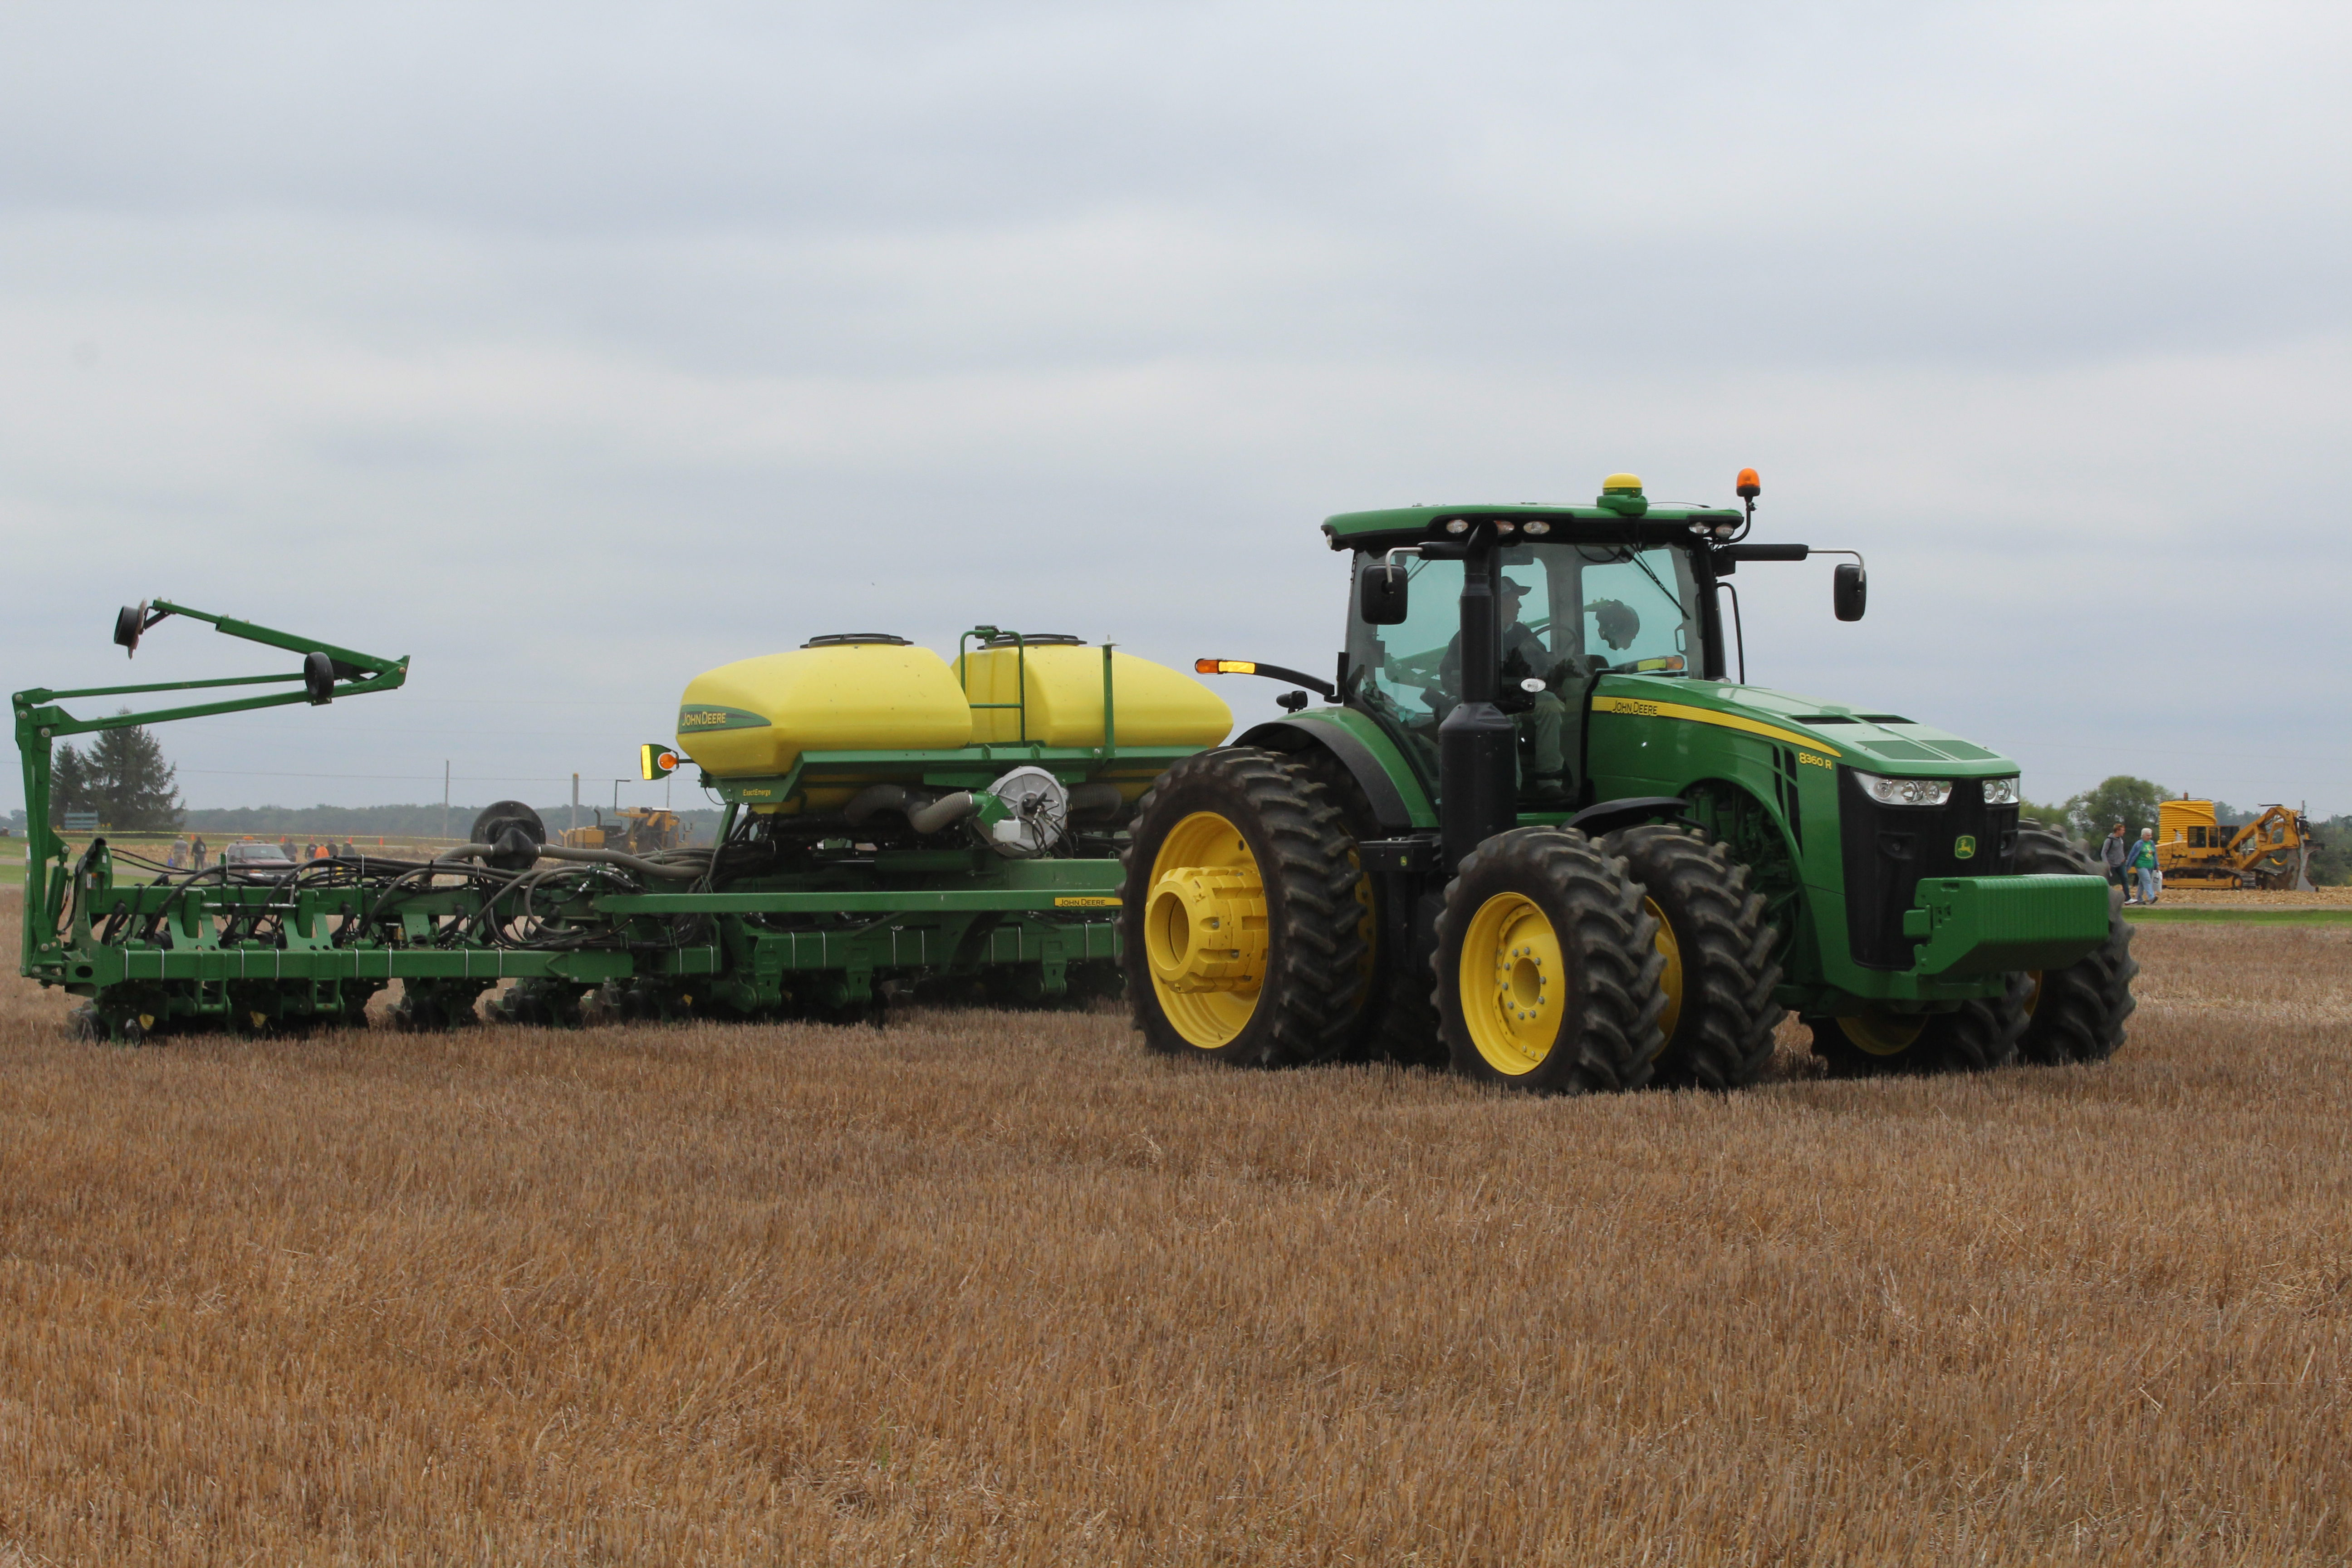 john deere analysis John deere is one of the most important irrigation companies in the globe it is an american company based in moline, illinois, and the most important john producer.